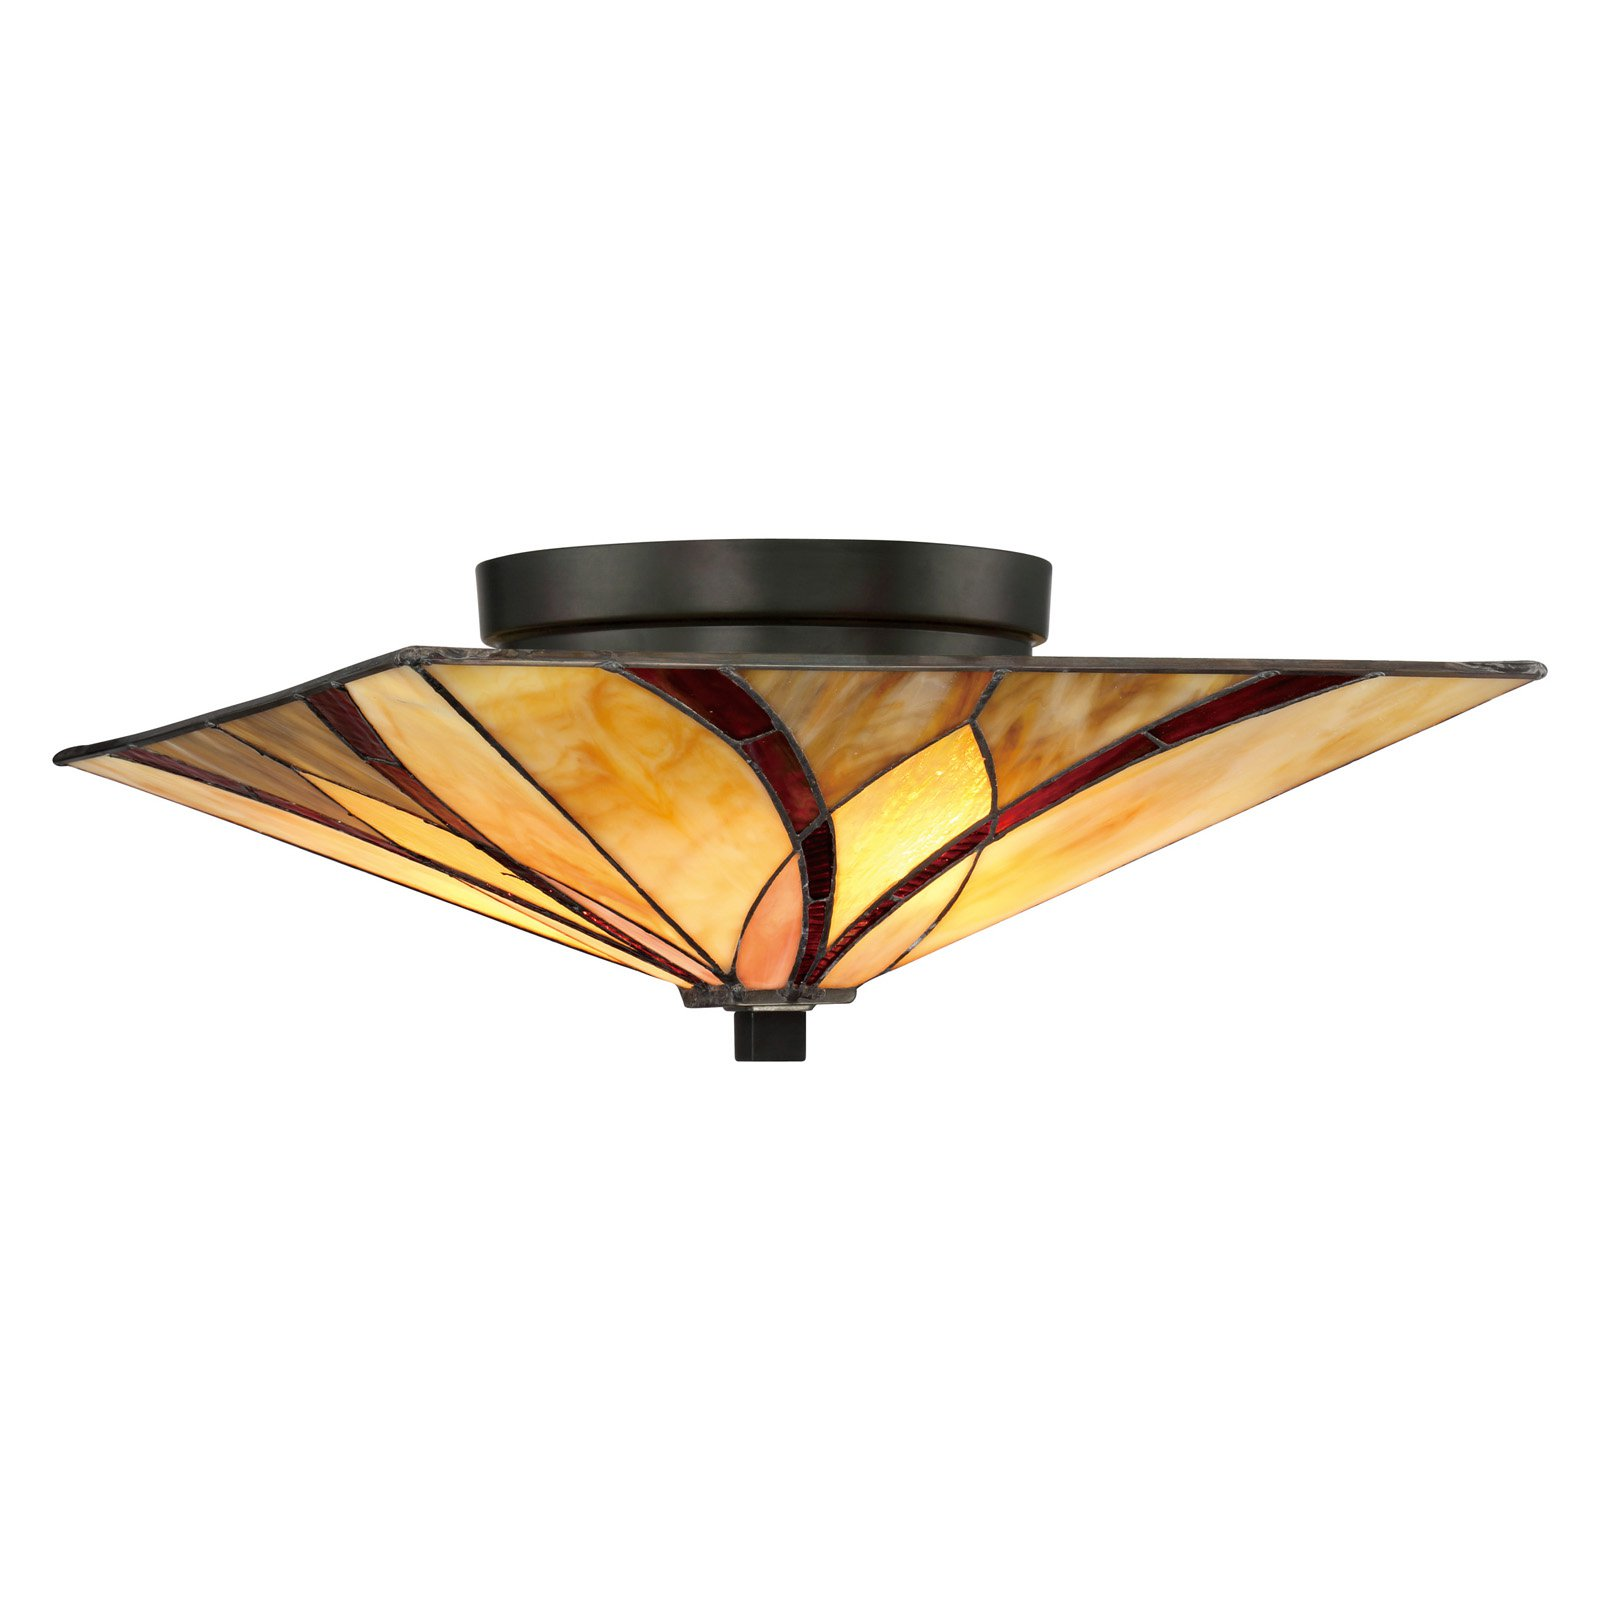 Quoizel Asheville TFAS1615VA Floating Flush Mount by Quoizel